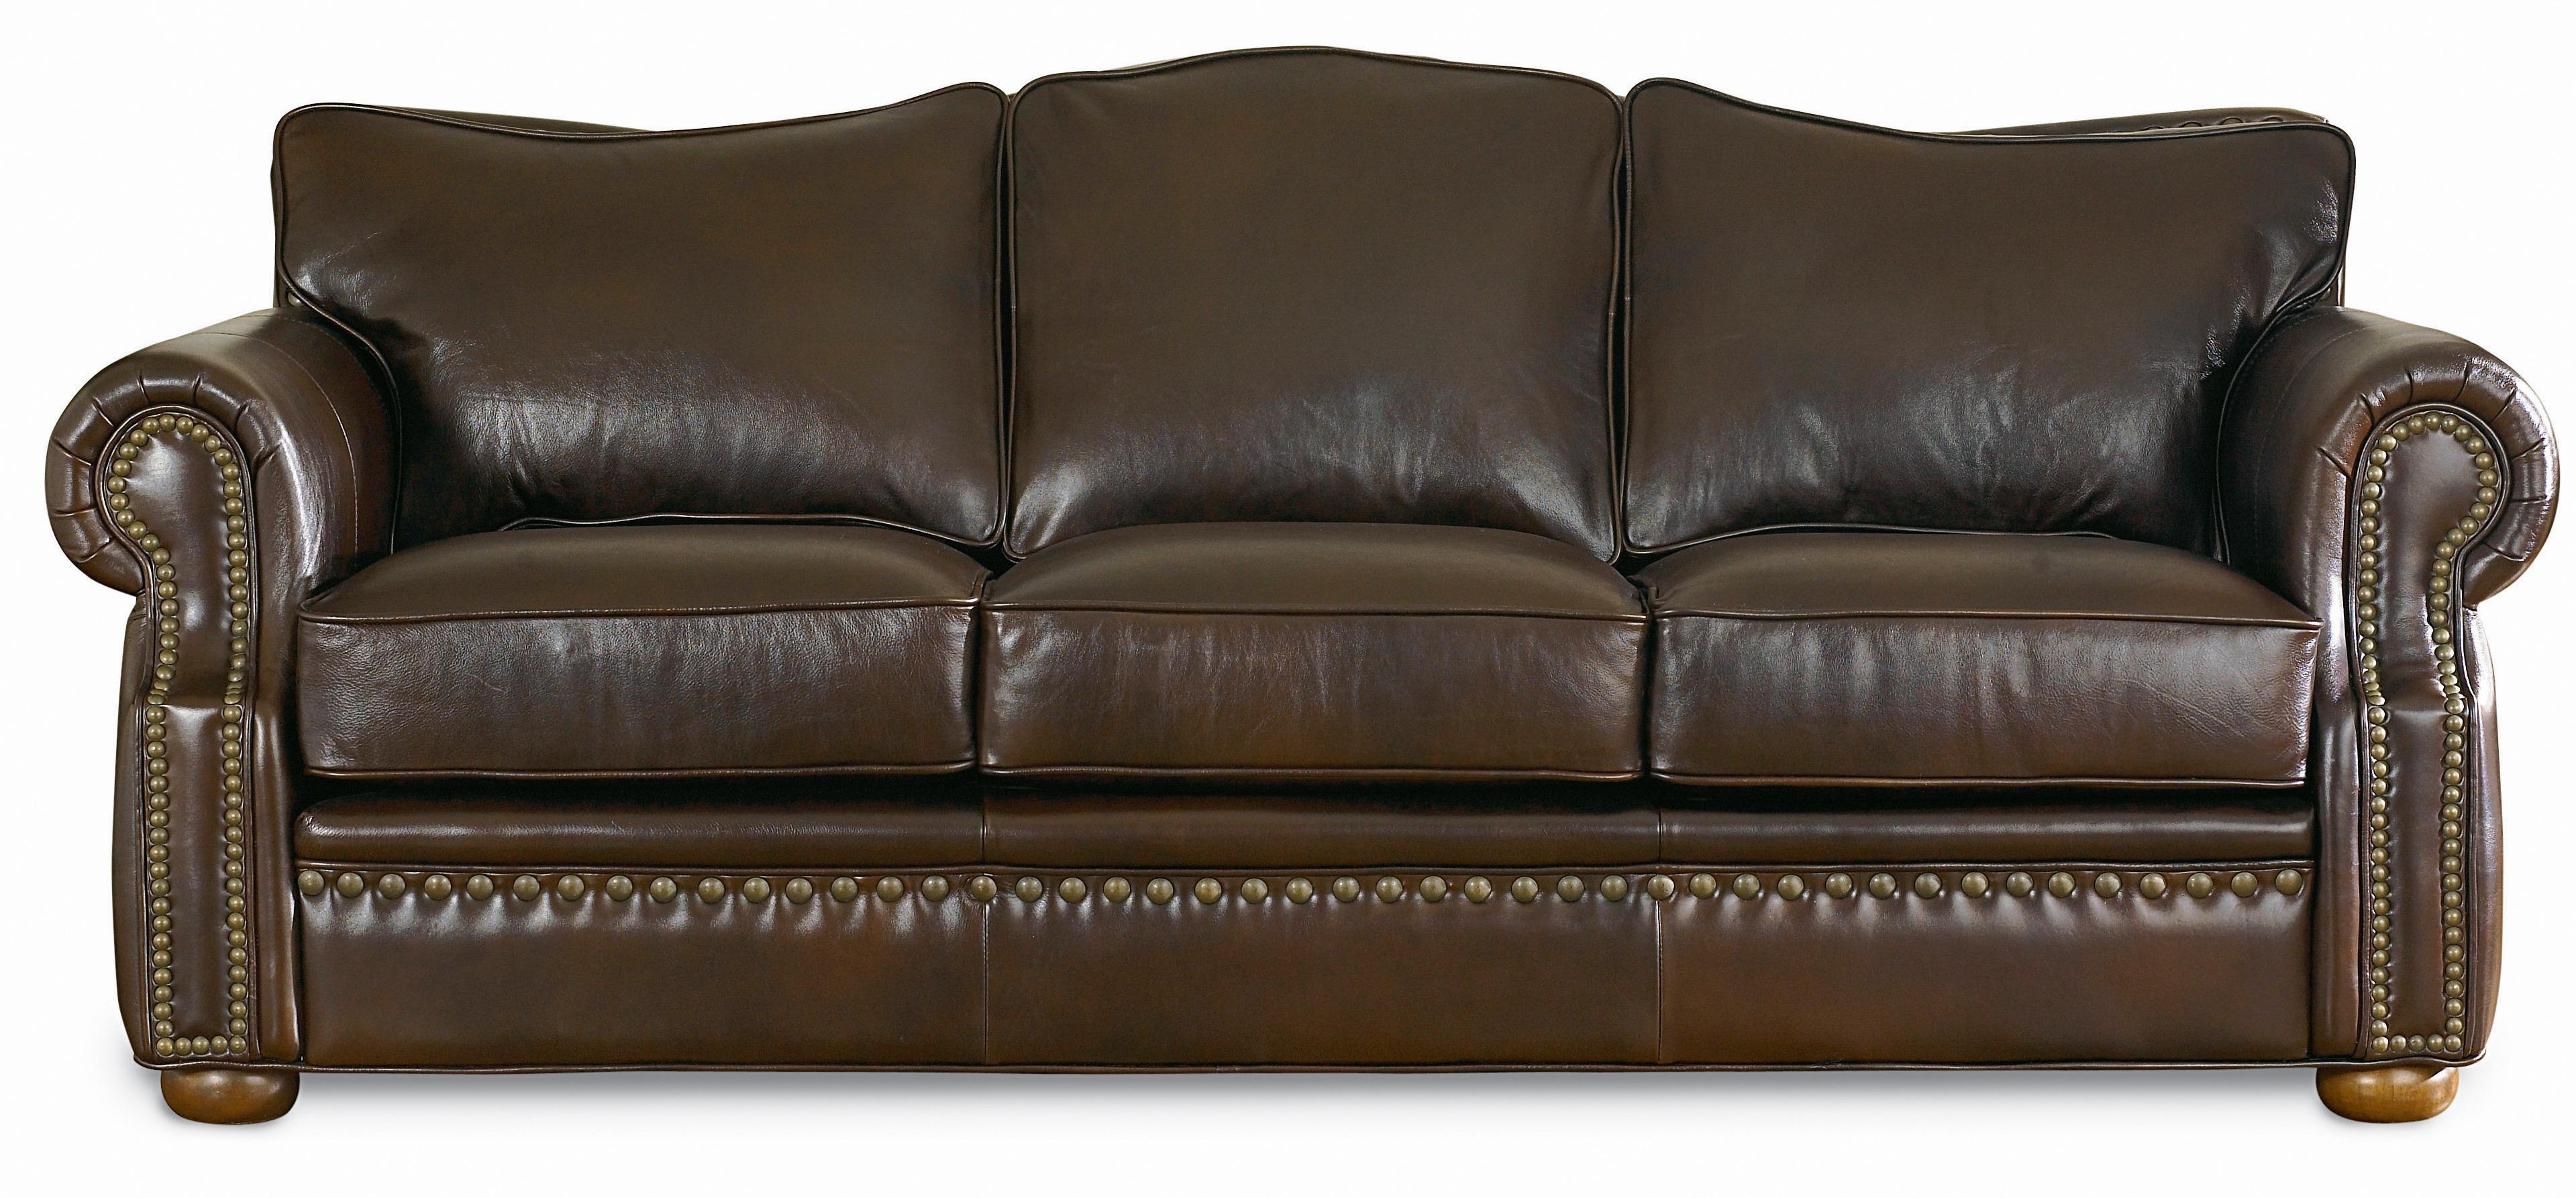 Leather Furniture Laredo Sofa | Texas Leather Interiors In Overstuffed Sofas And Chairs (View 3 of 20)